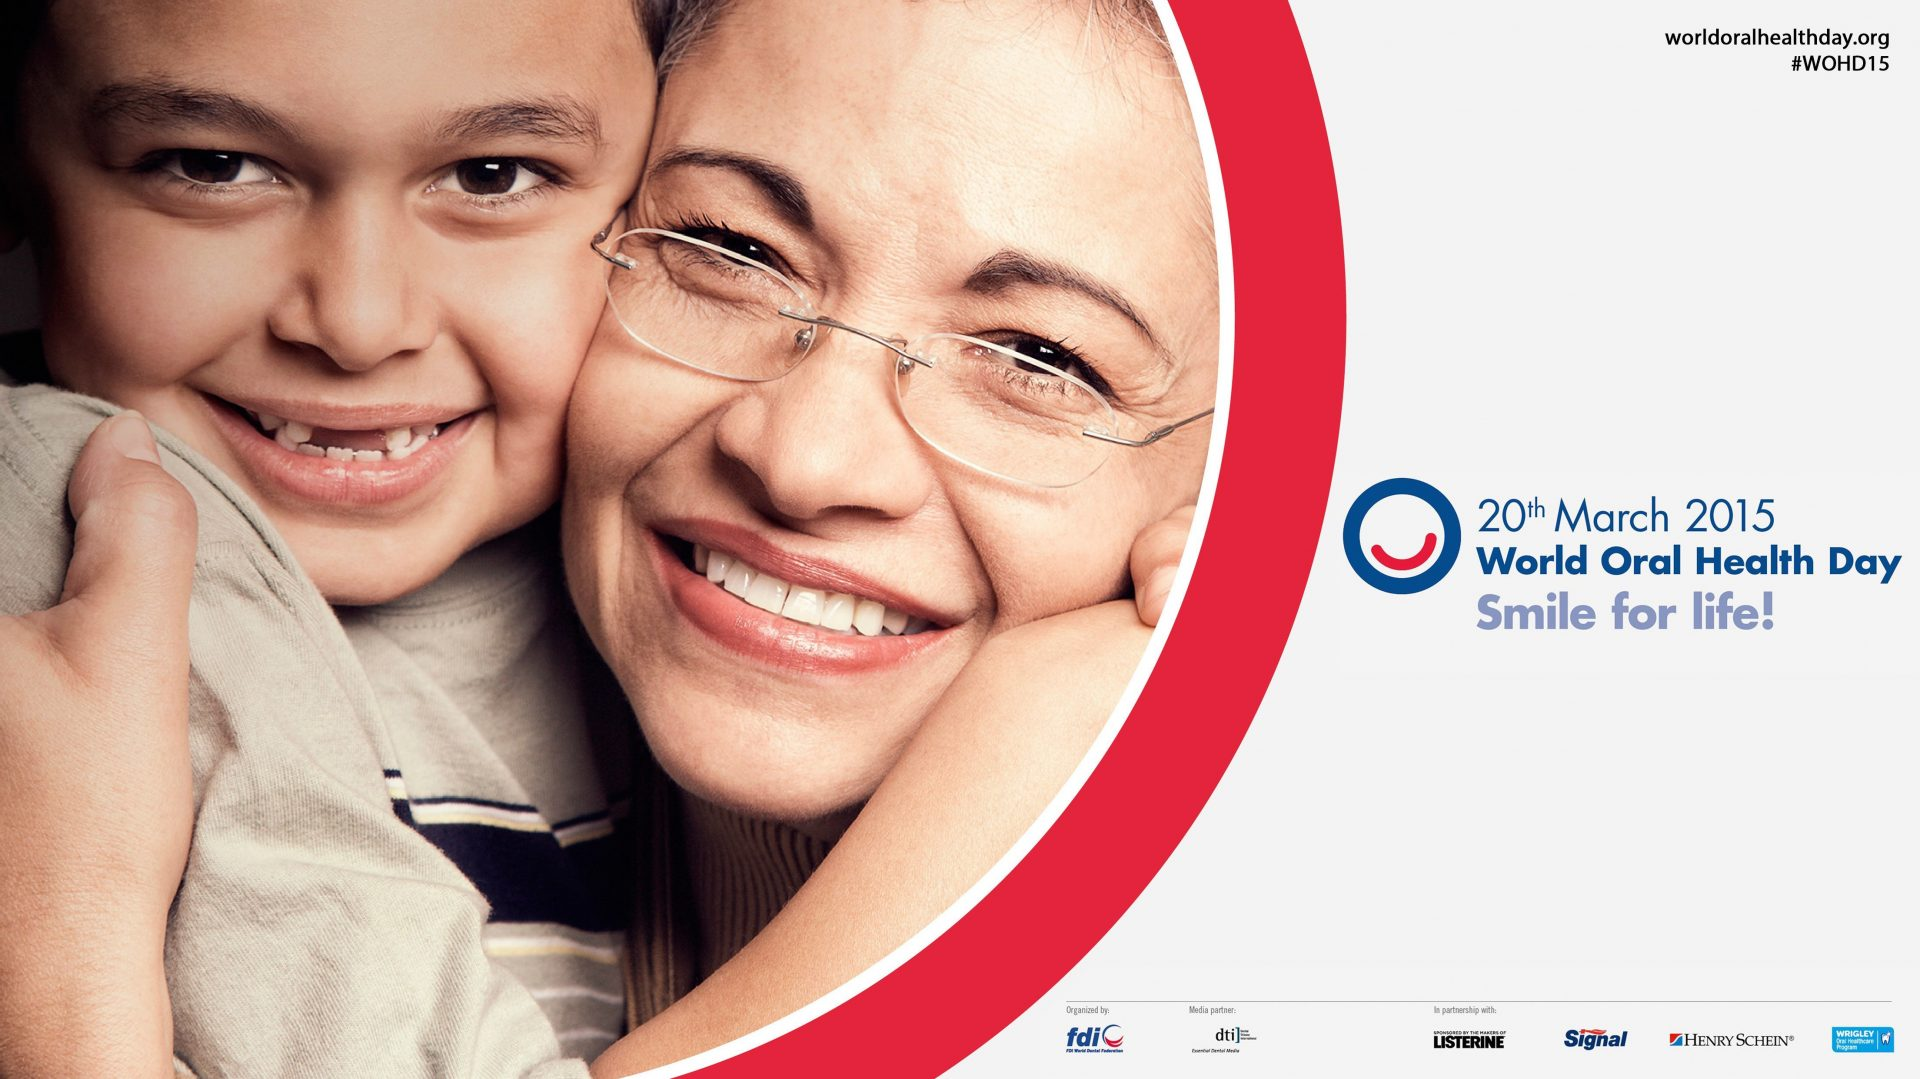 photo of grandmother and grandchild smiling with World Oral Health Day Logo